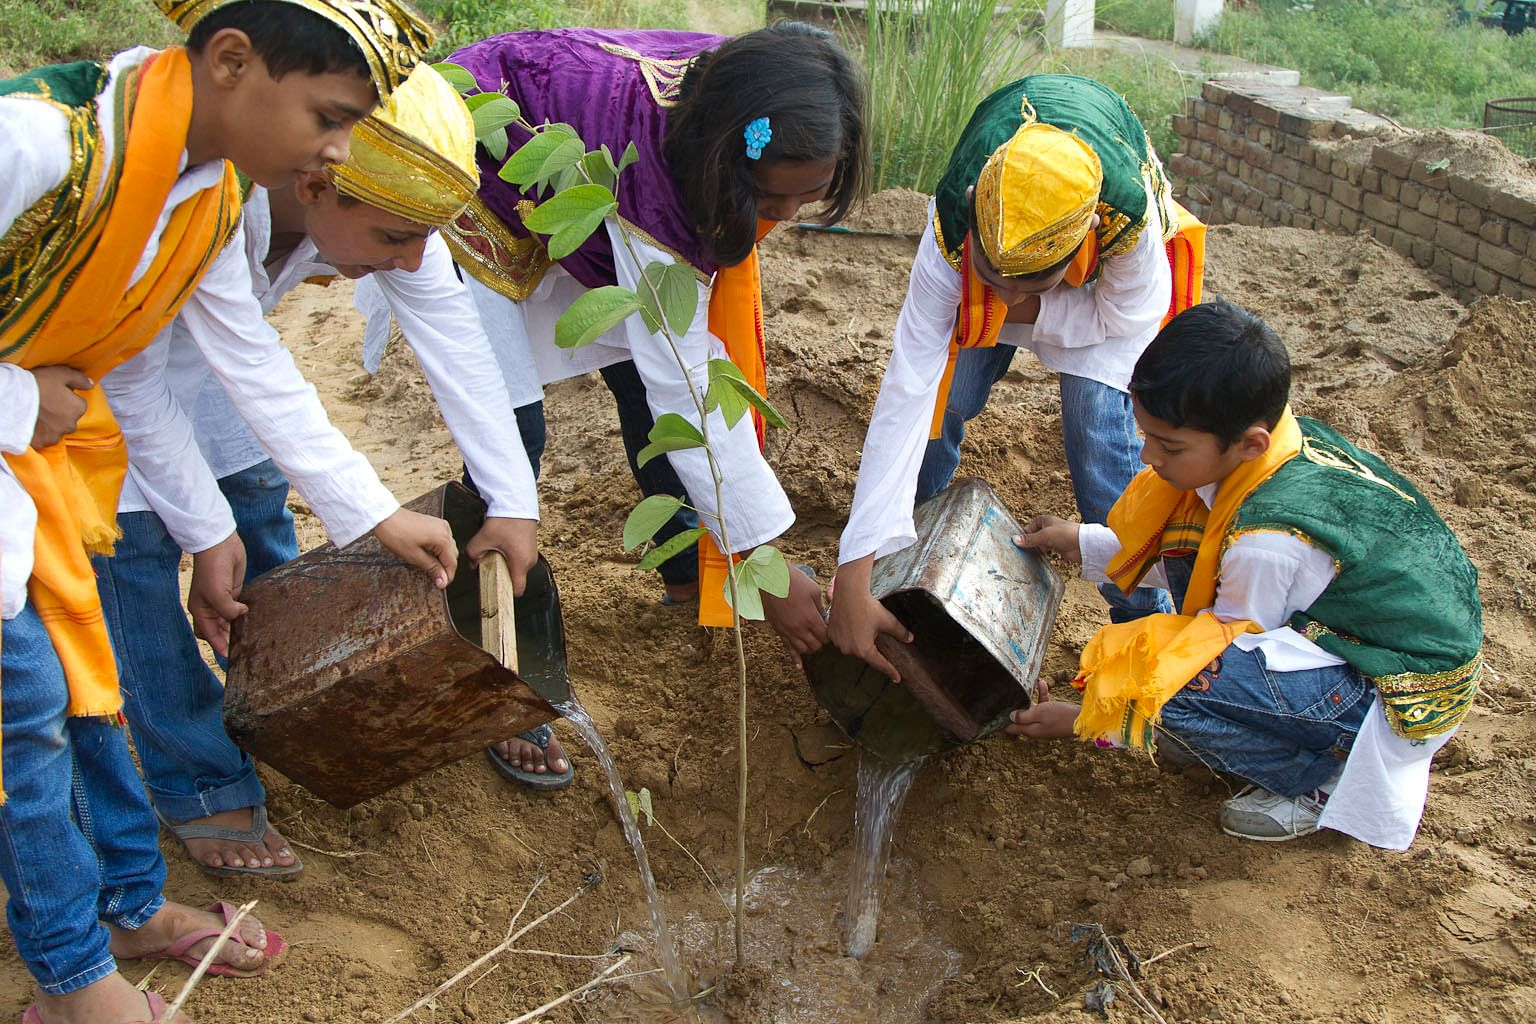 Planting as part of non formal education.